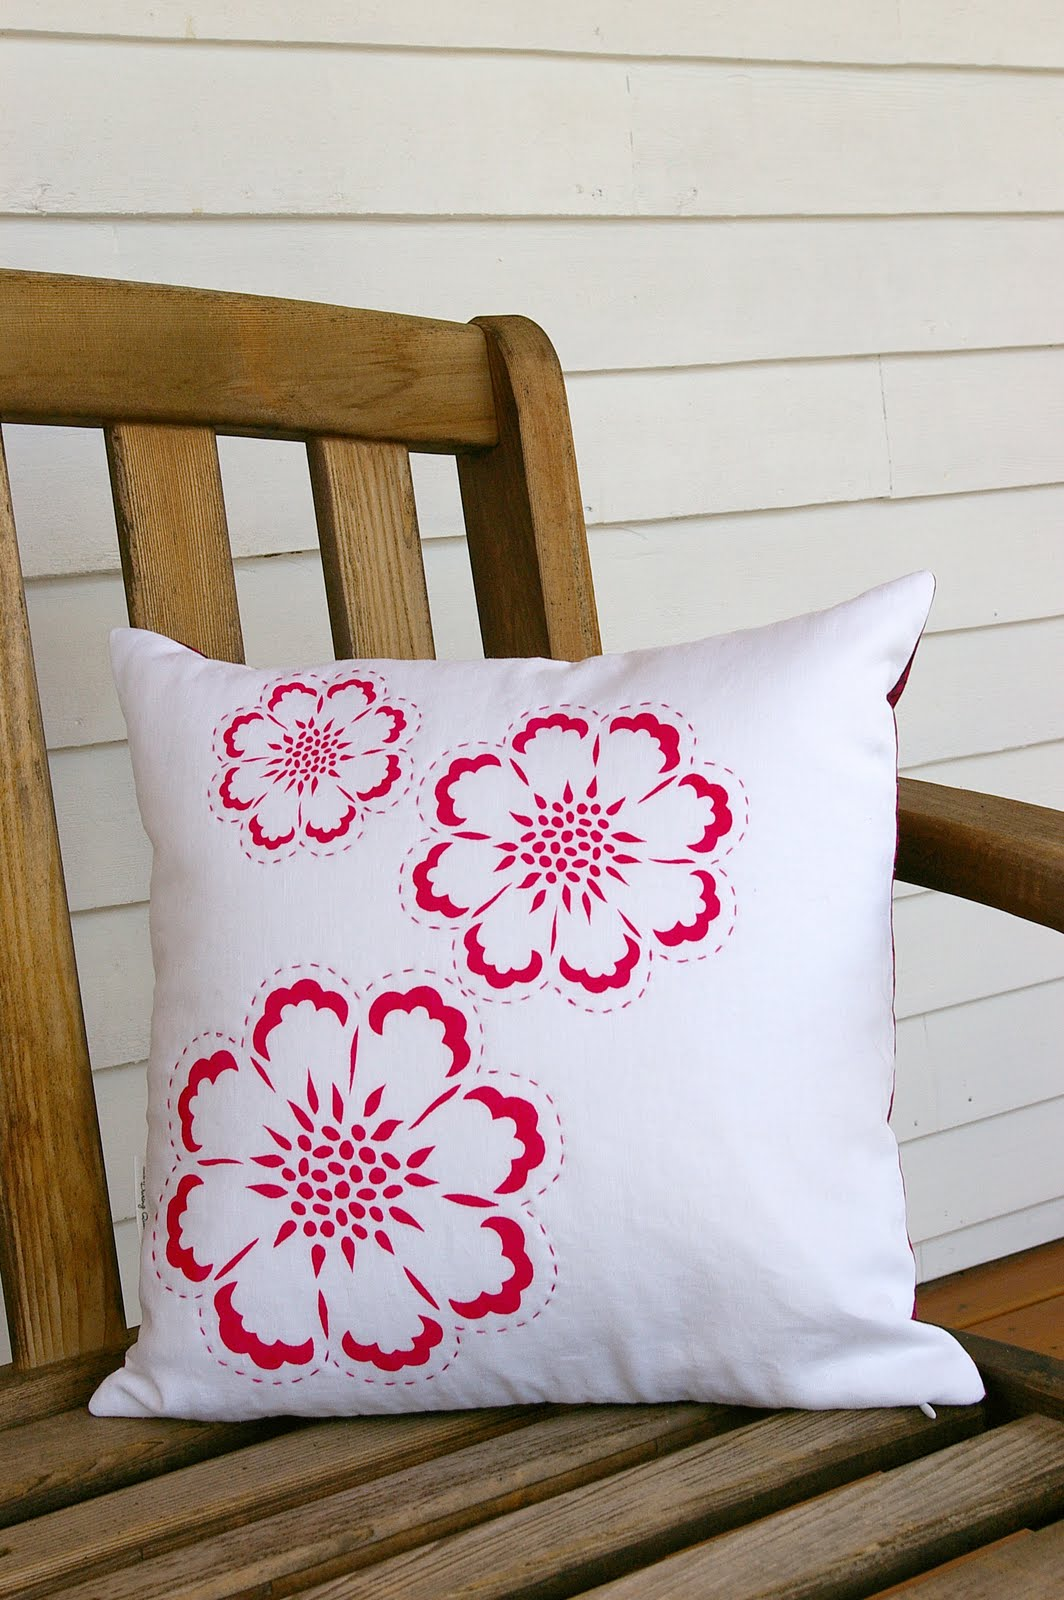 Embroidery Designs On Pillow Cover makaroka.com